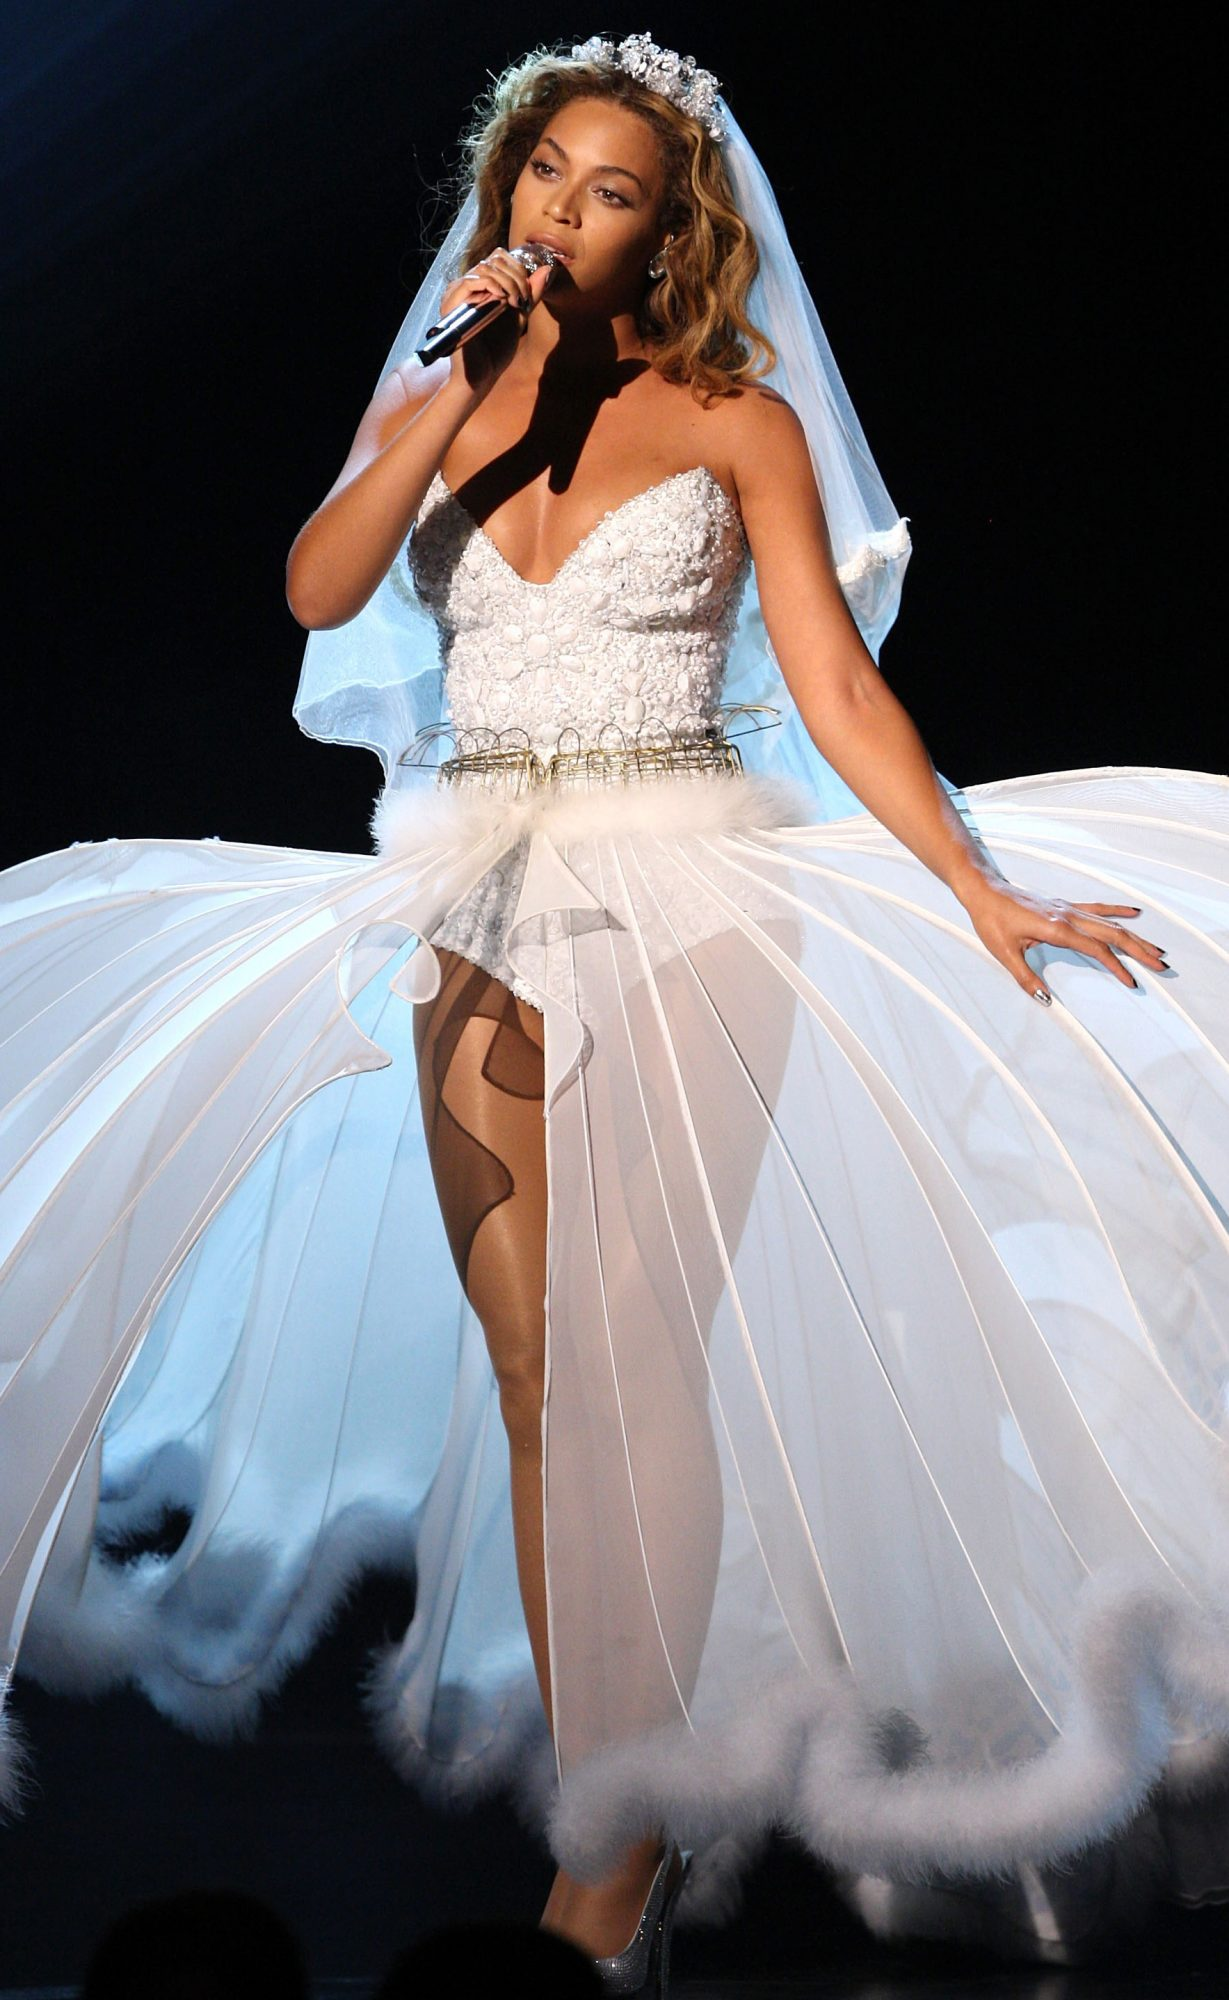 2009 BET AWards